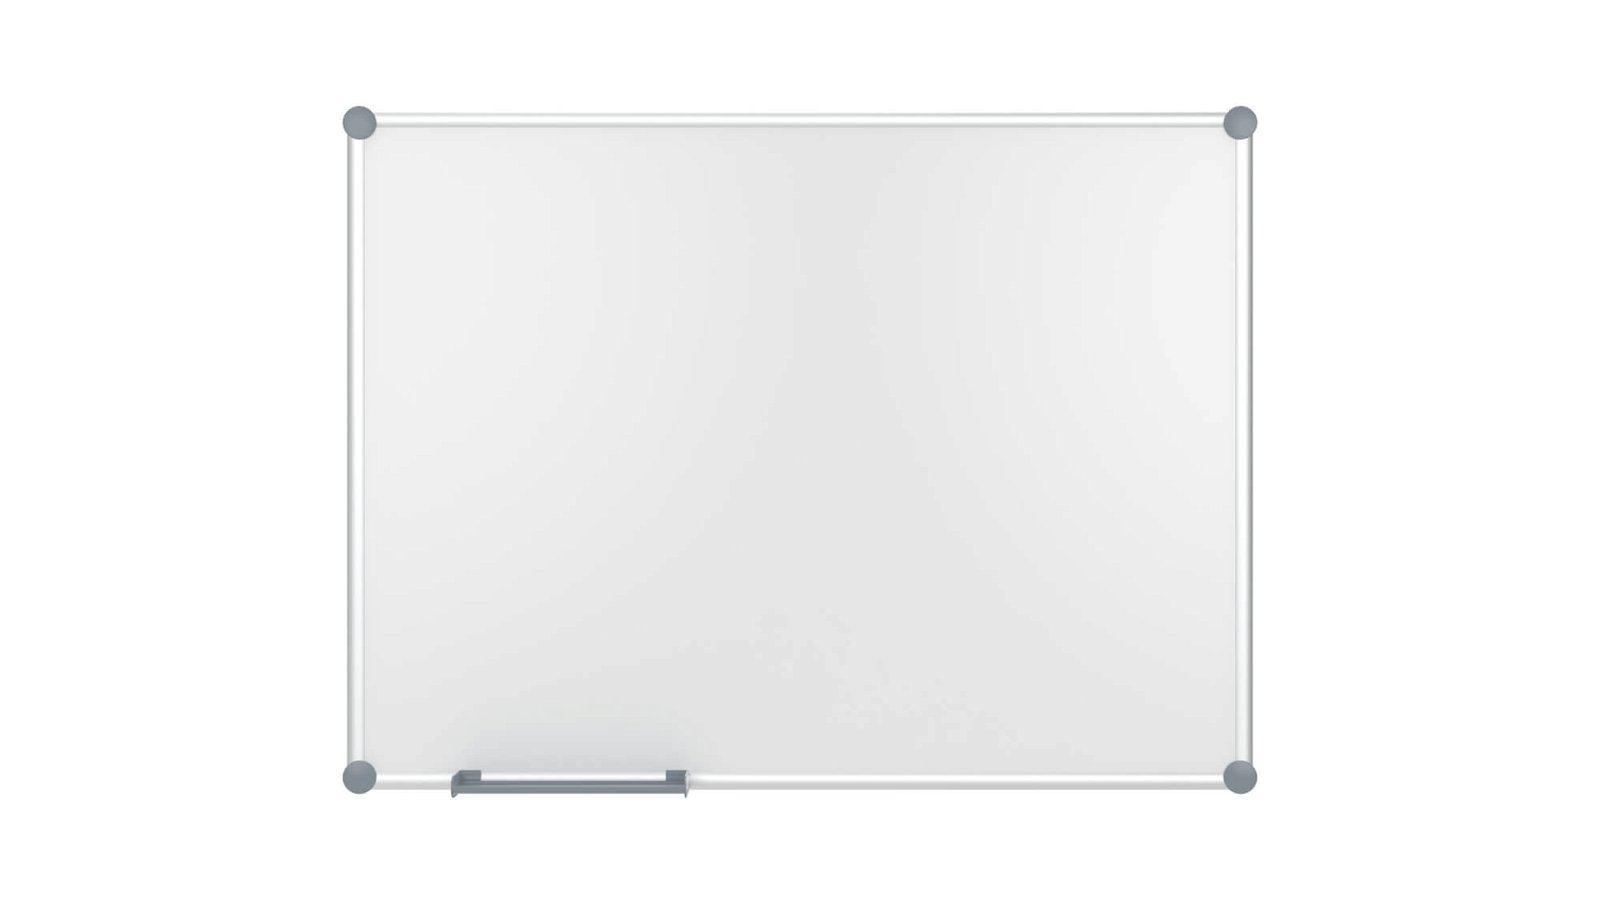 Whiteboard 2000 MAULpro, Emaille, 90x120 cm, grau